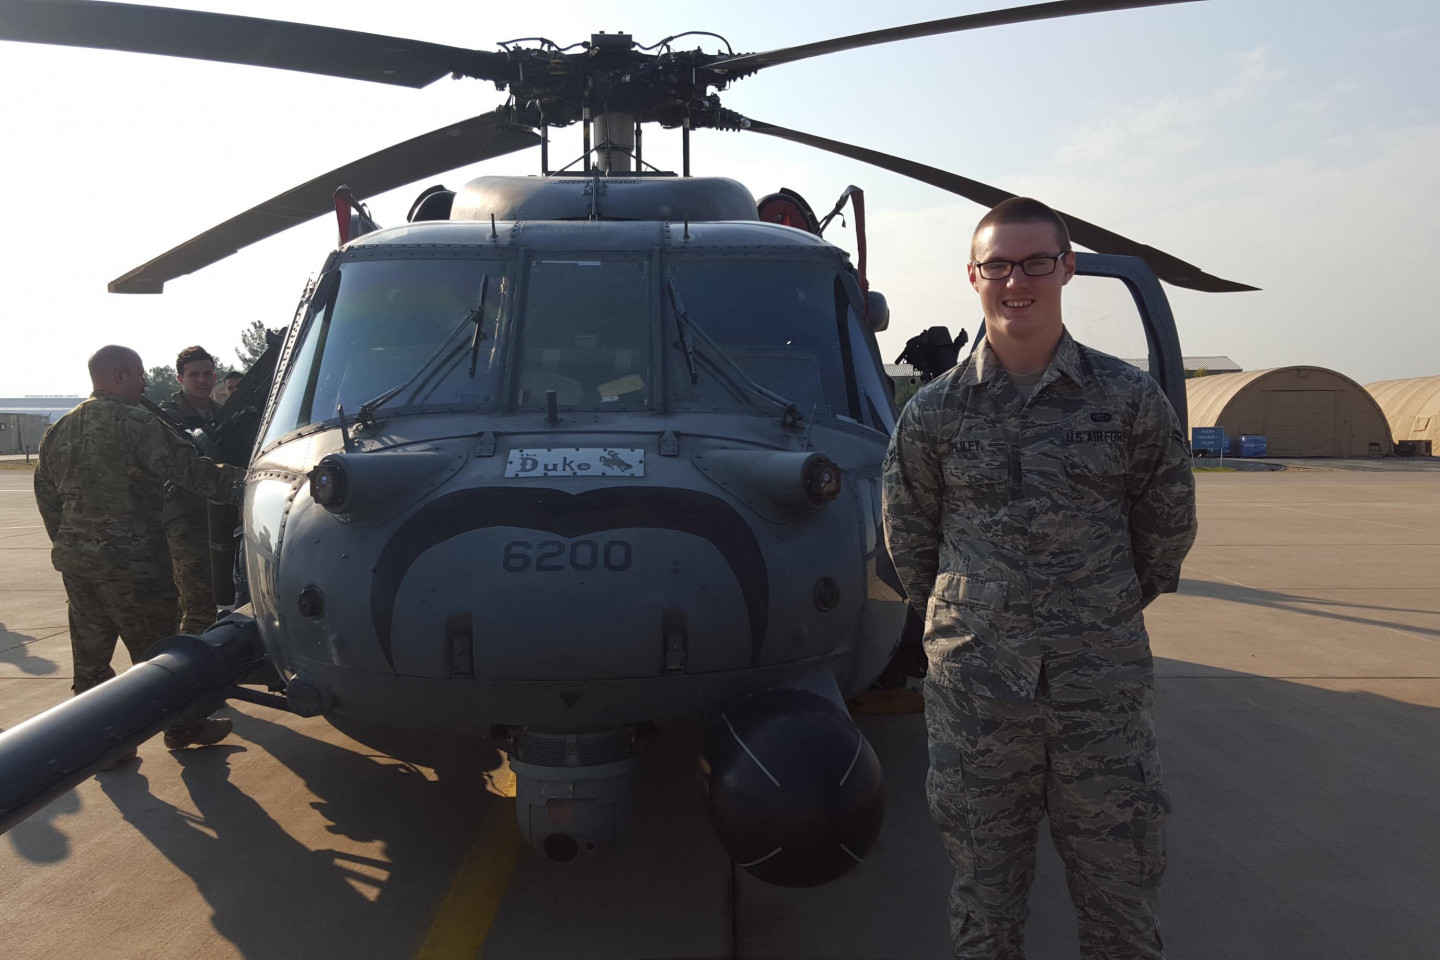 Russell Pliley stands next to a military helicopter.